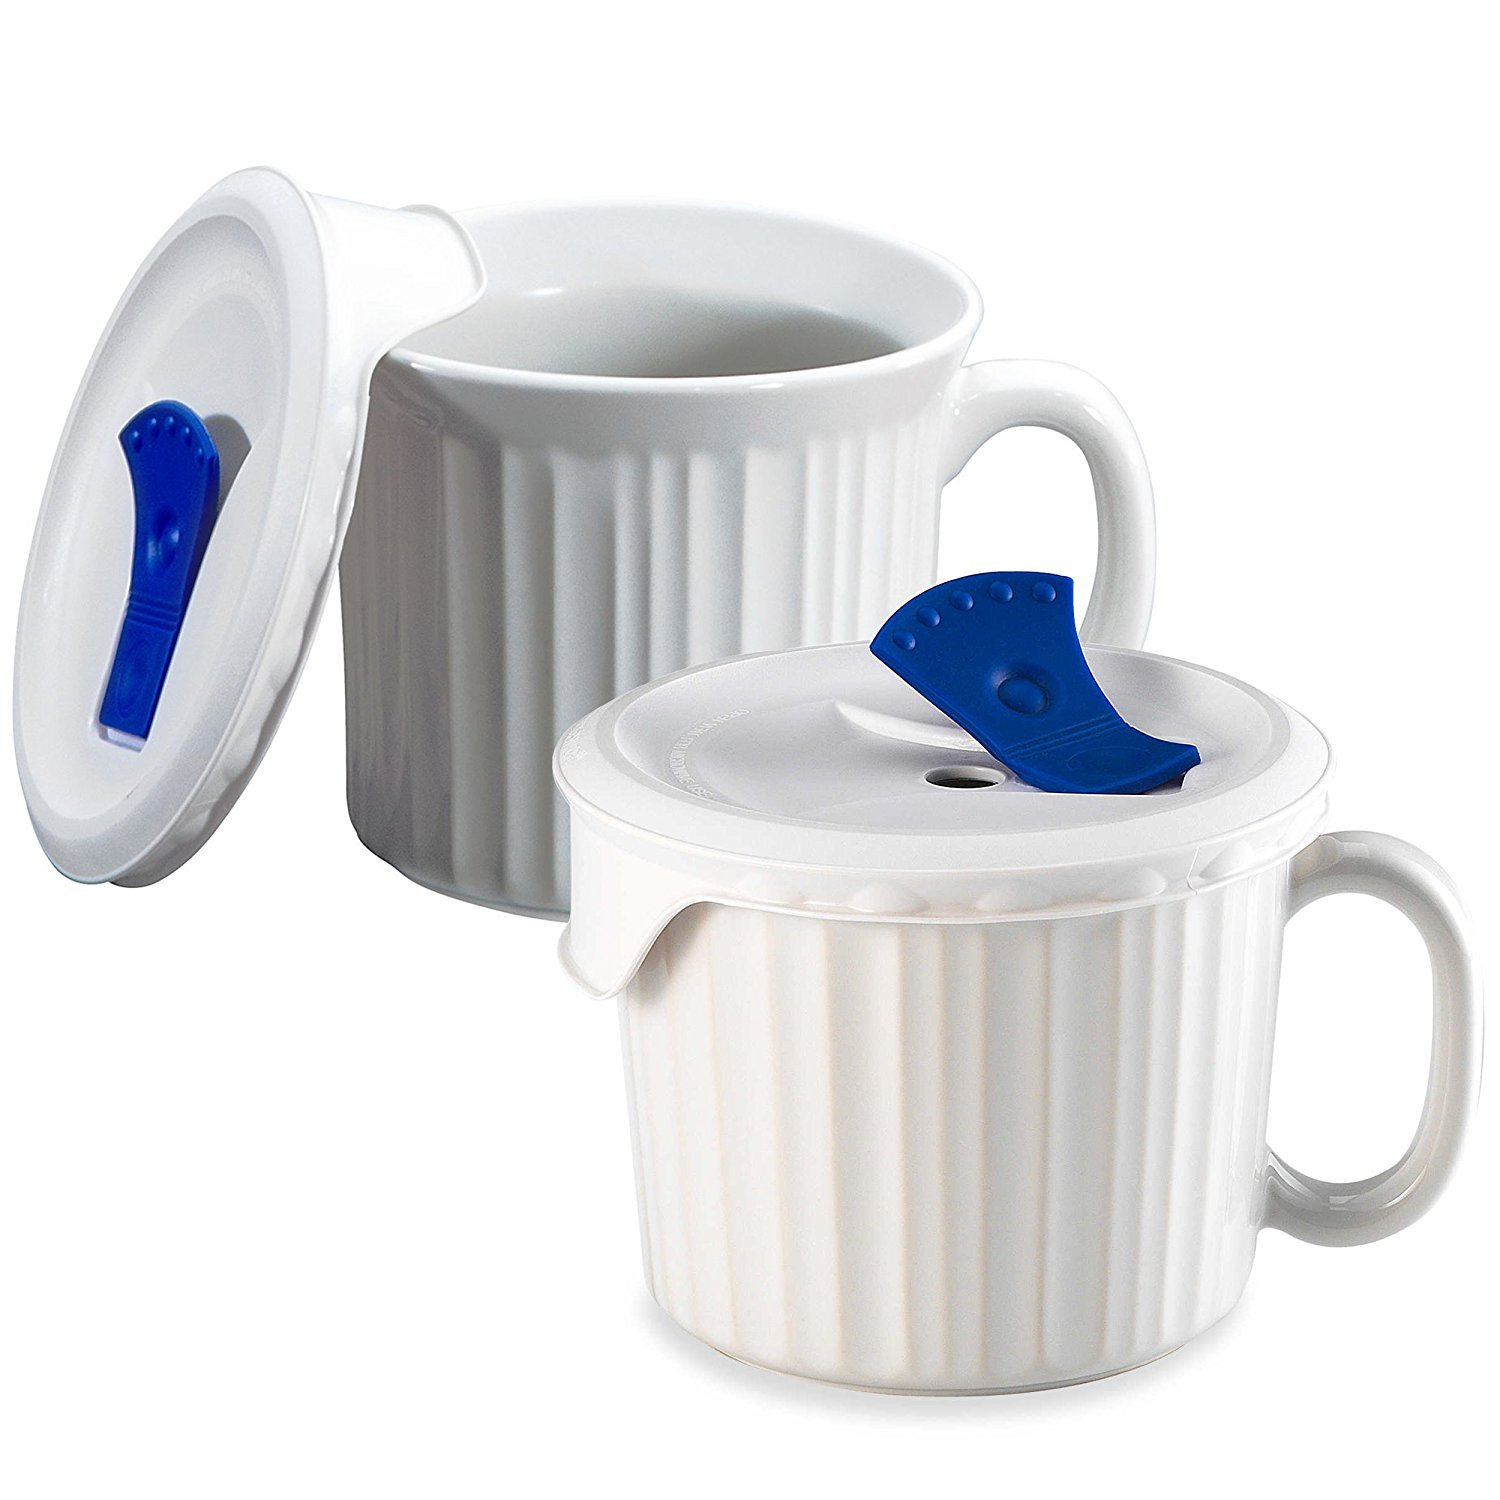 Corningware 20-Ounce Oven Safe Meal Mug with Vented Lid, White, Pack of 2